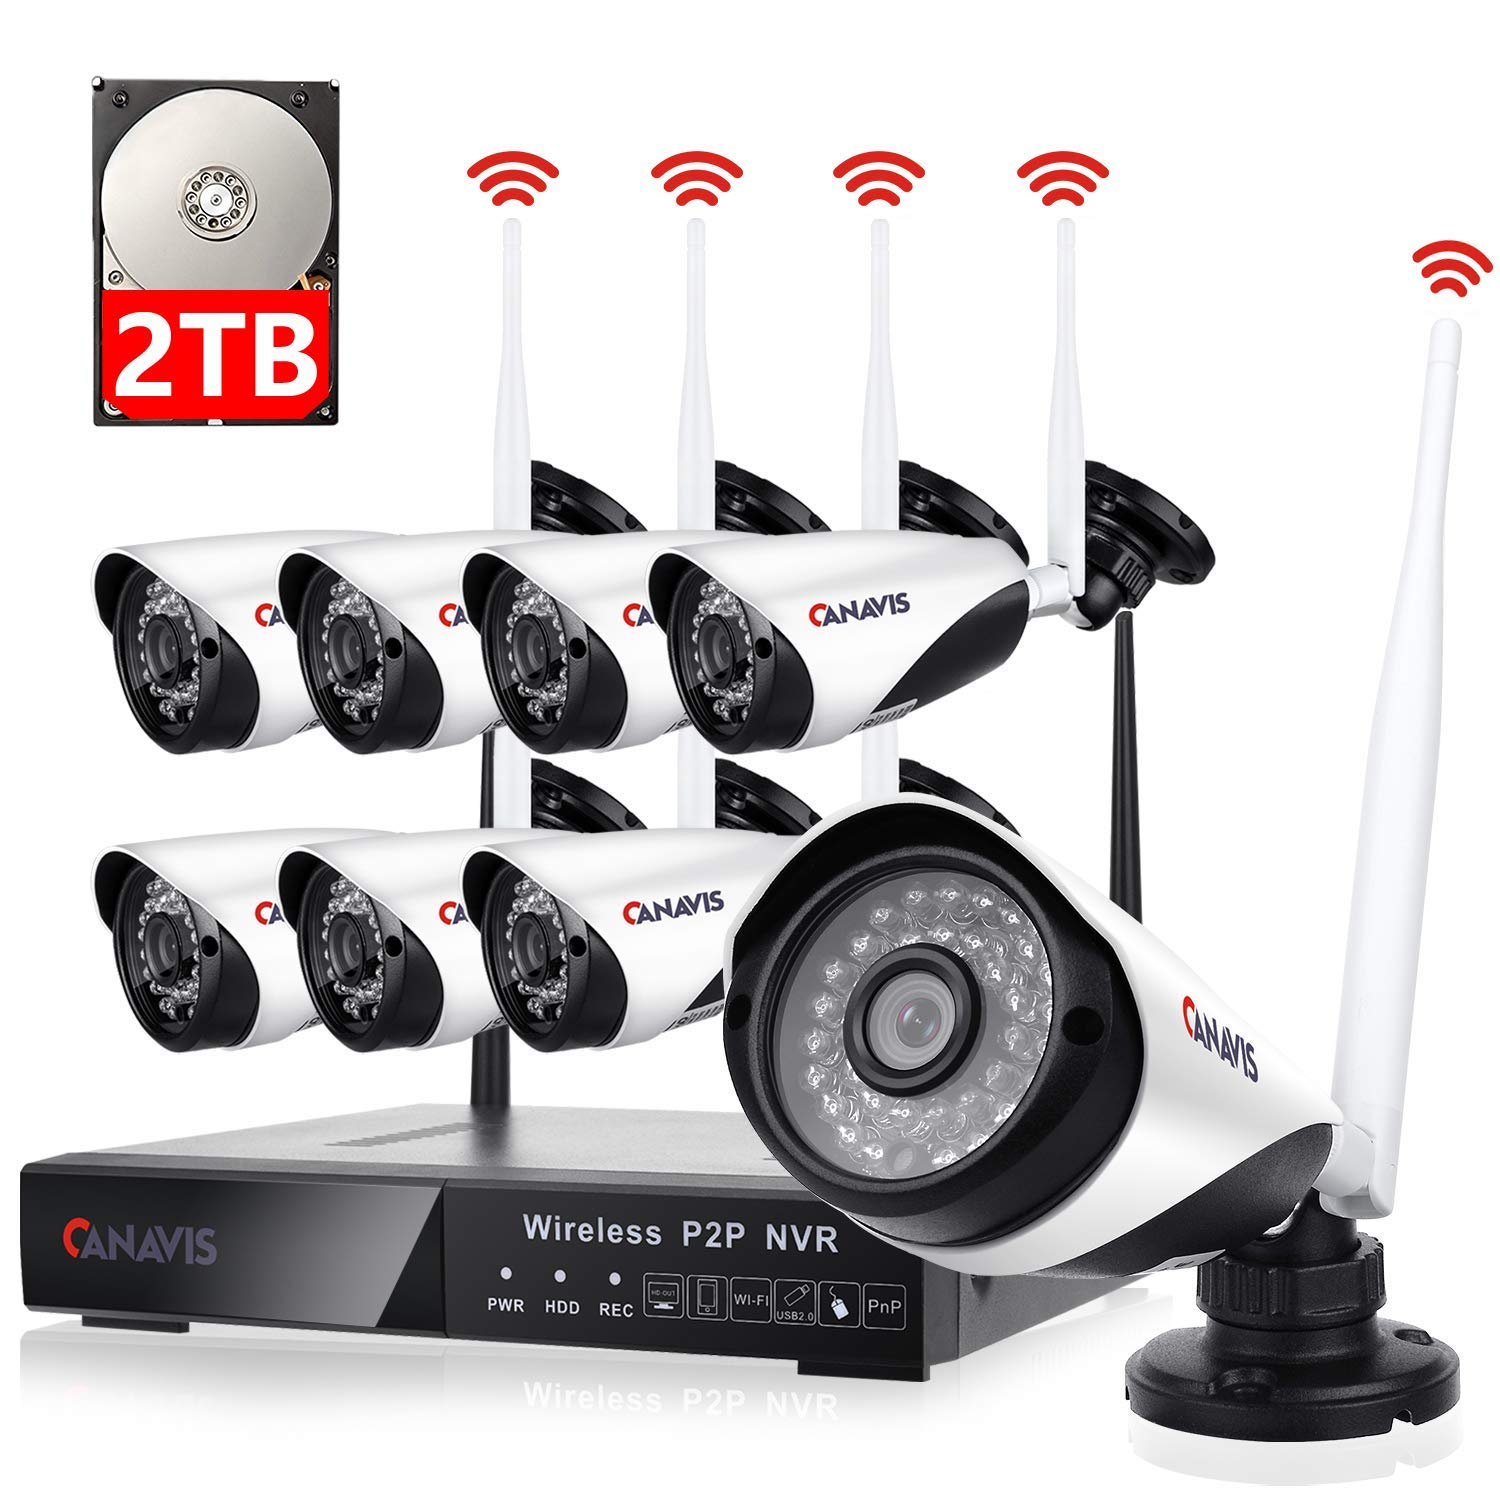 8 Channel Wireless Security Camera System NVR Video Surveillance System 720p Bullet Camera with Night Vision Motion Detection Backup 2TB Hard Drive for Indoor Outdoor